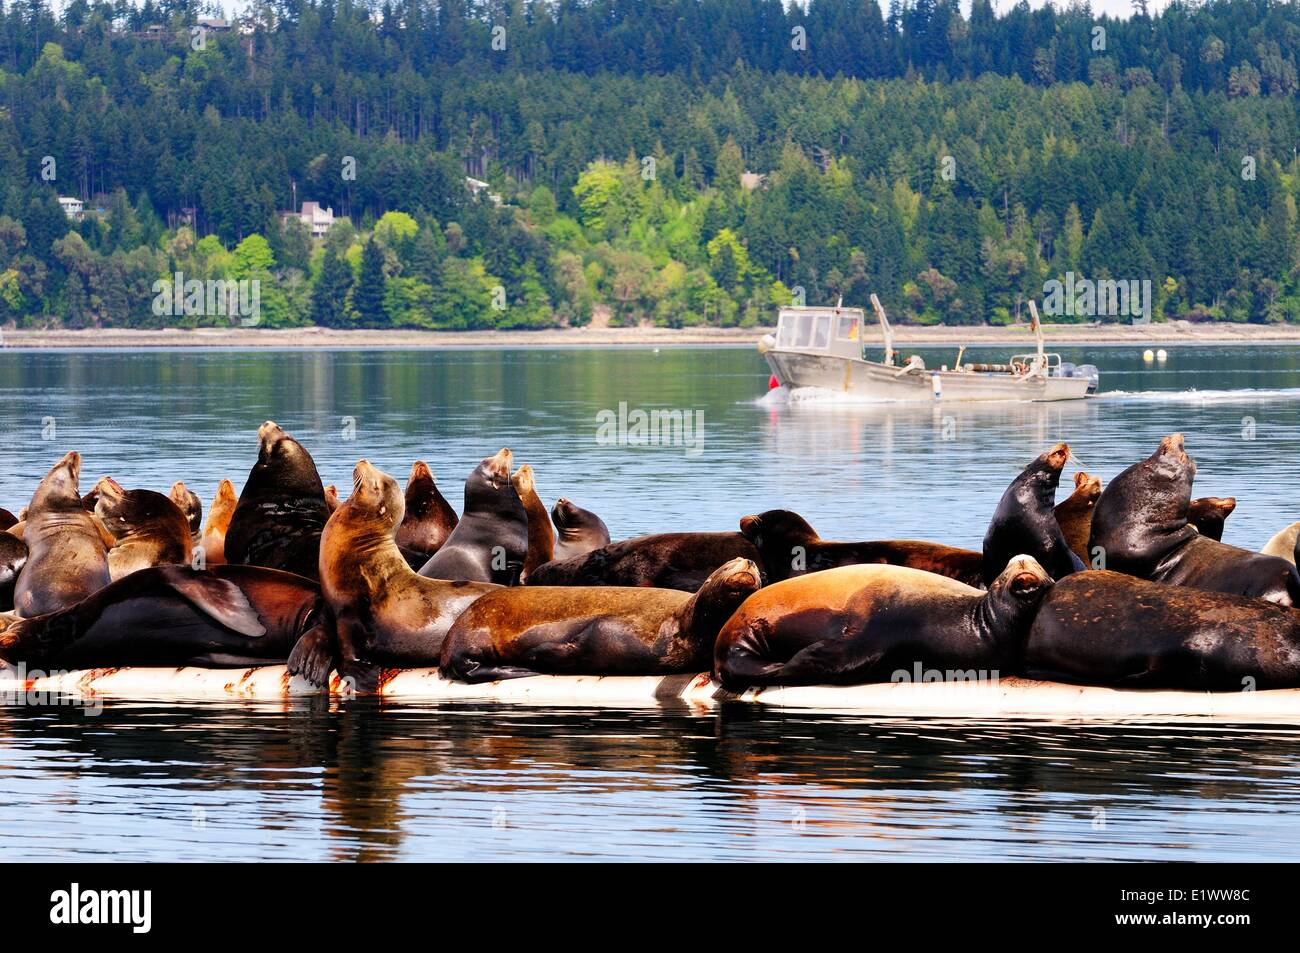 Steller sea lions basking in the sun on a wharf near Fanny Bay, BC, Canada - Stock Image